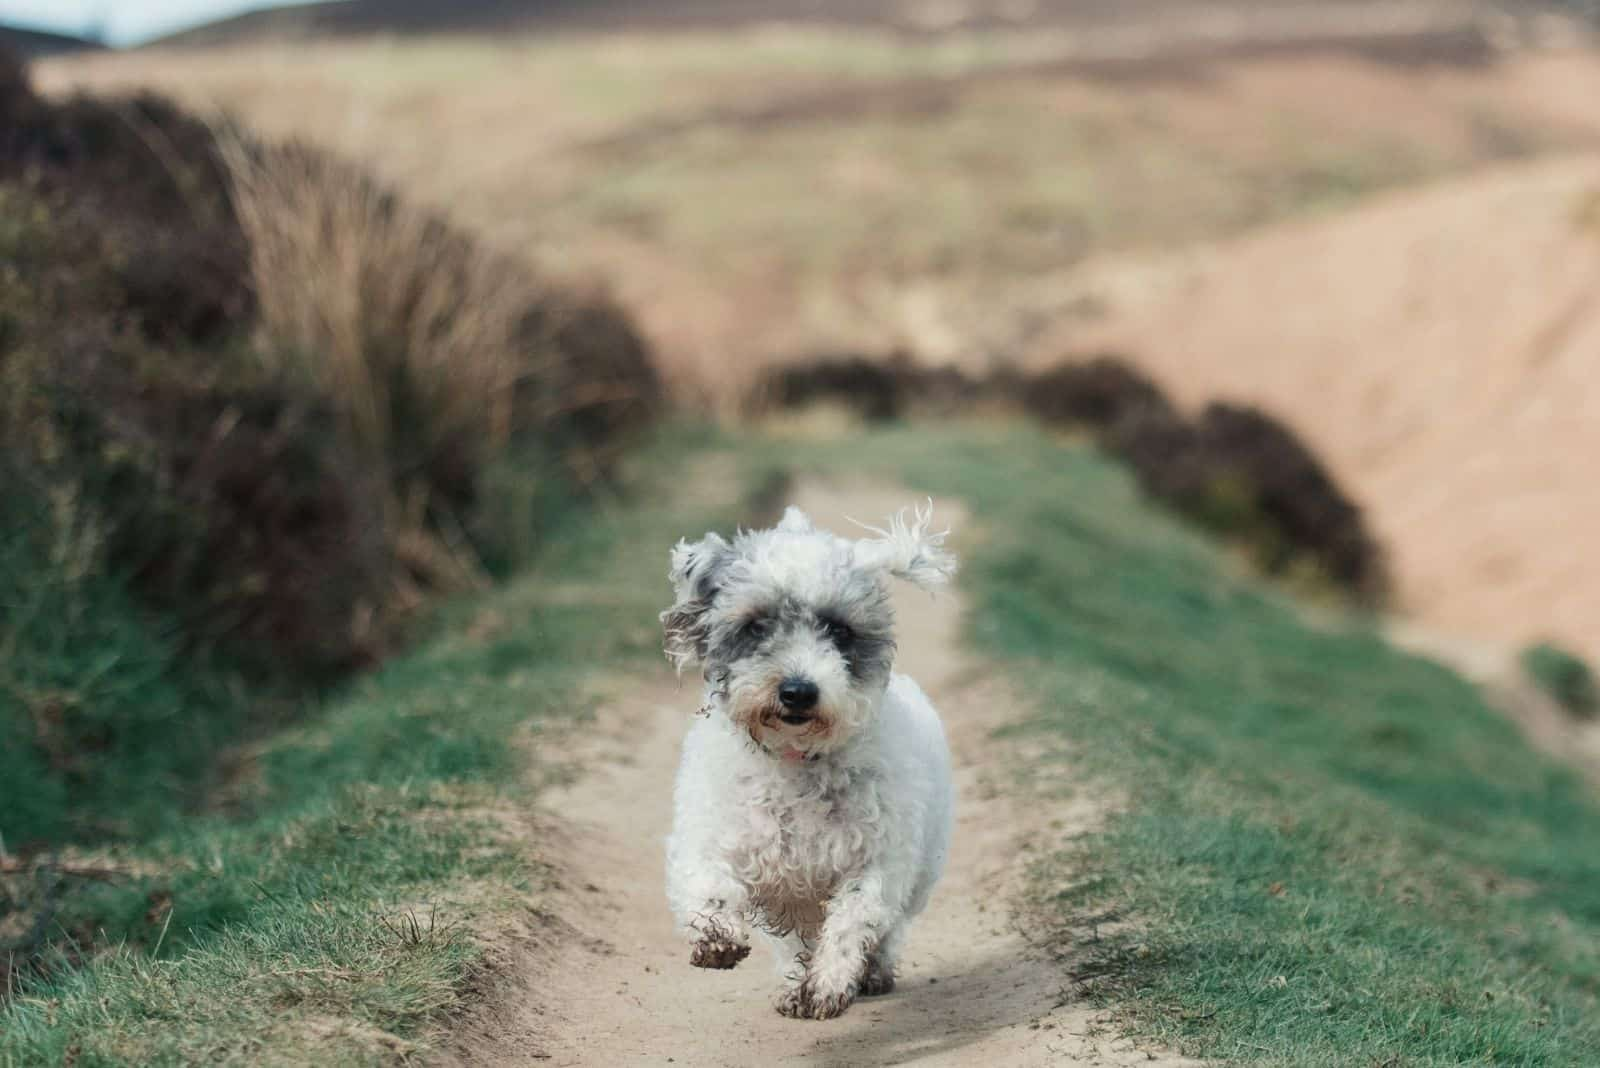 agile merle poodle running in the countryside